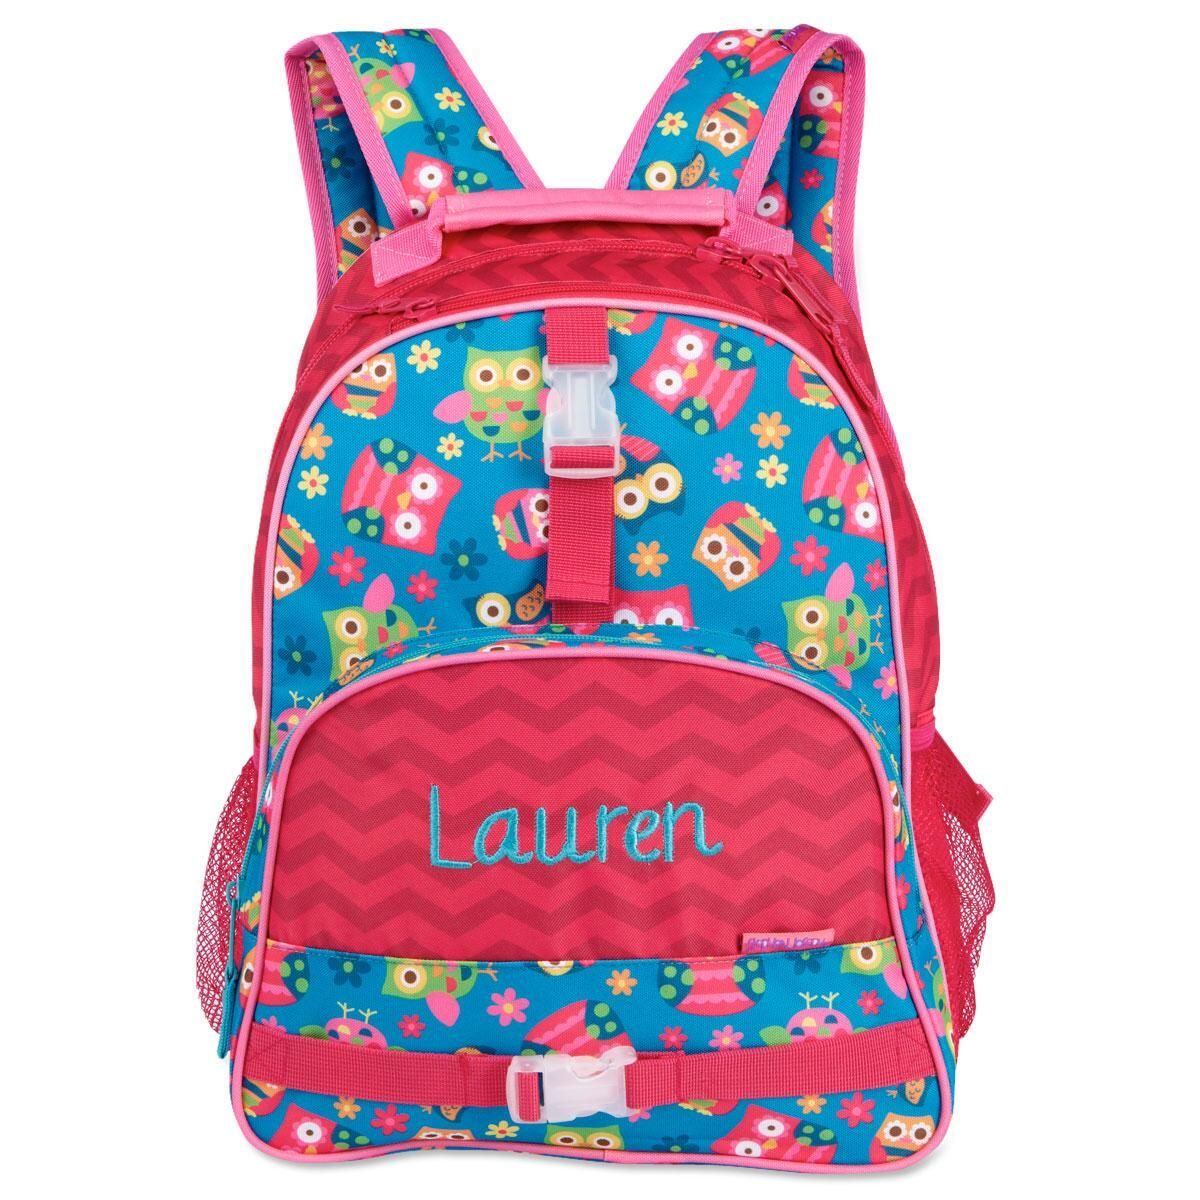 Owl Personalized Backpack by Stephen Joseph®